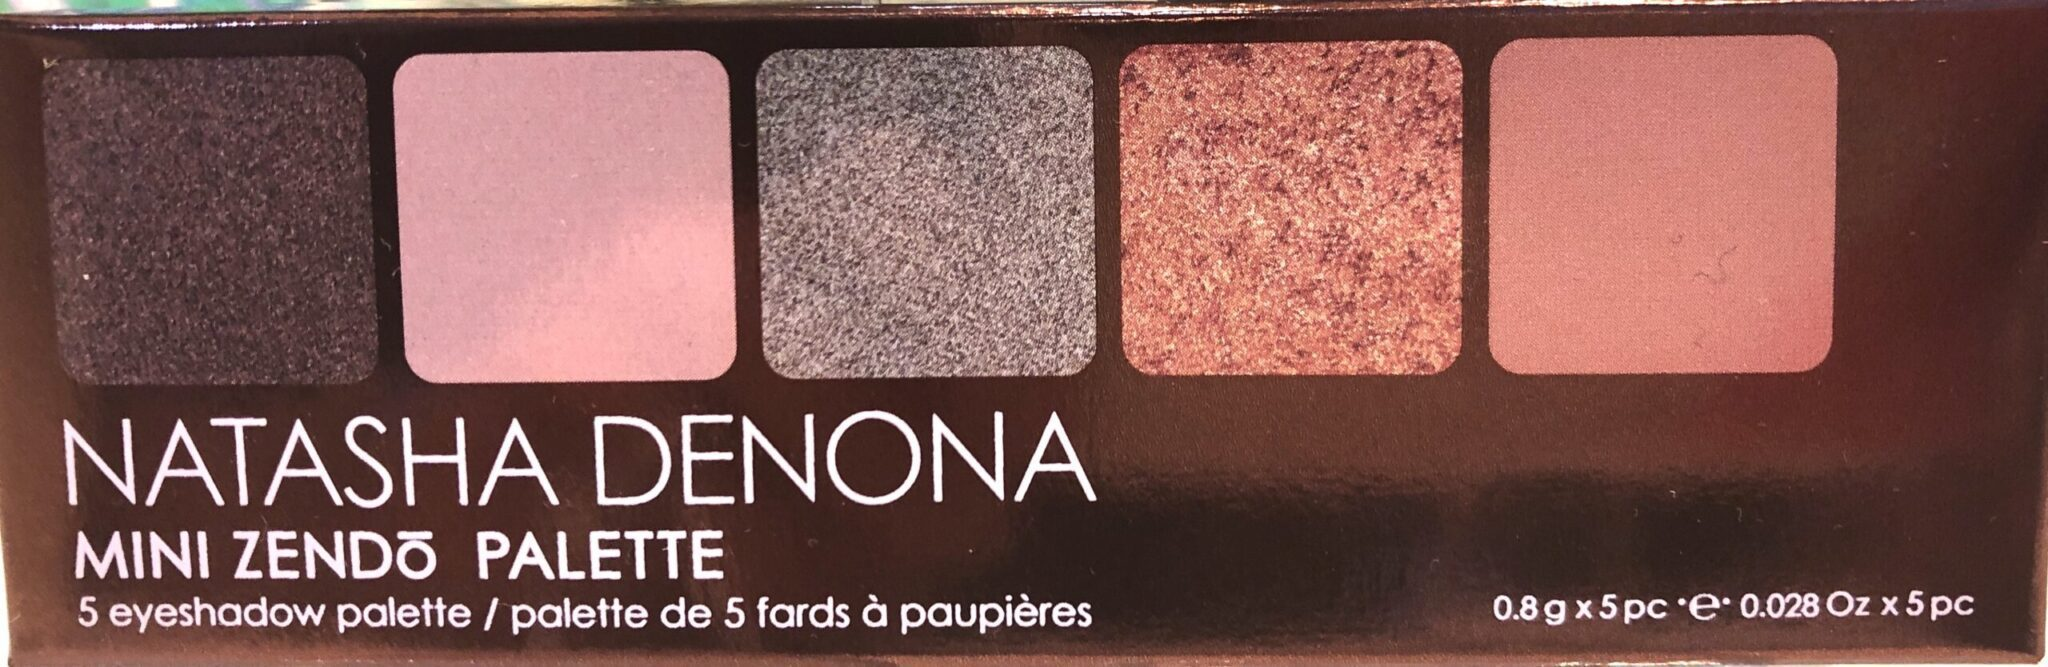 Natasha Denona Mini Zendo Eyeshadow Palette Box